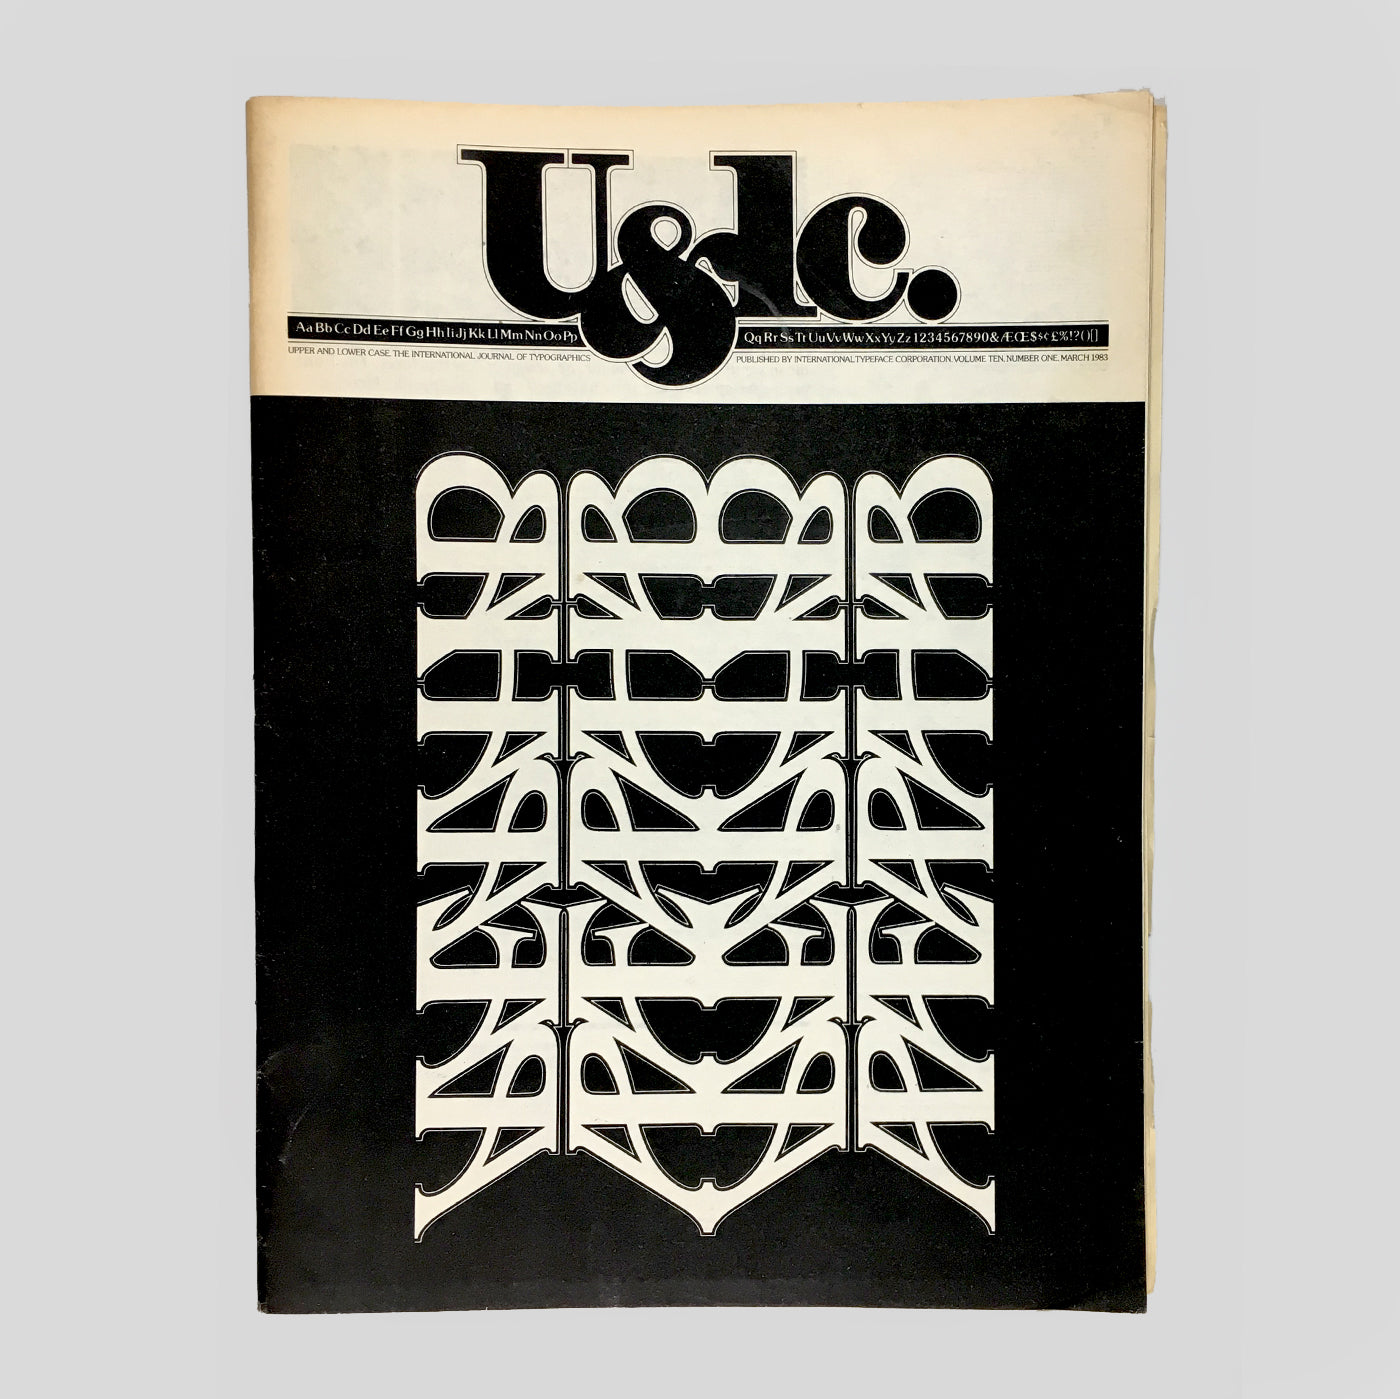 U&lc Vol. 10, No. 1, March 1980